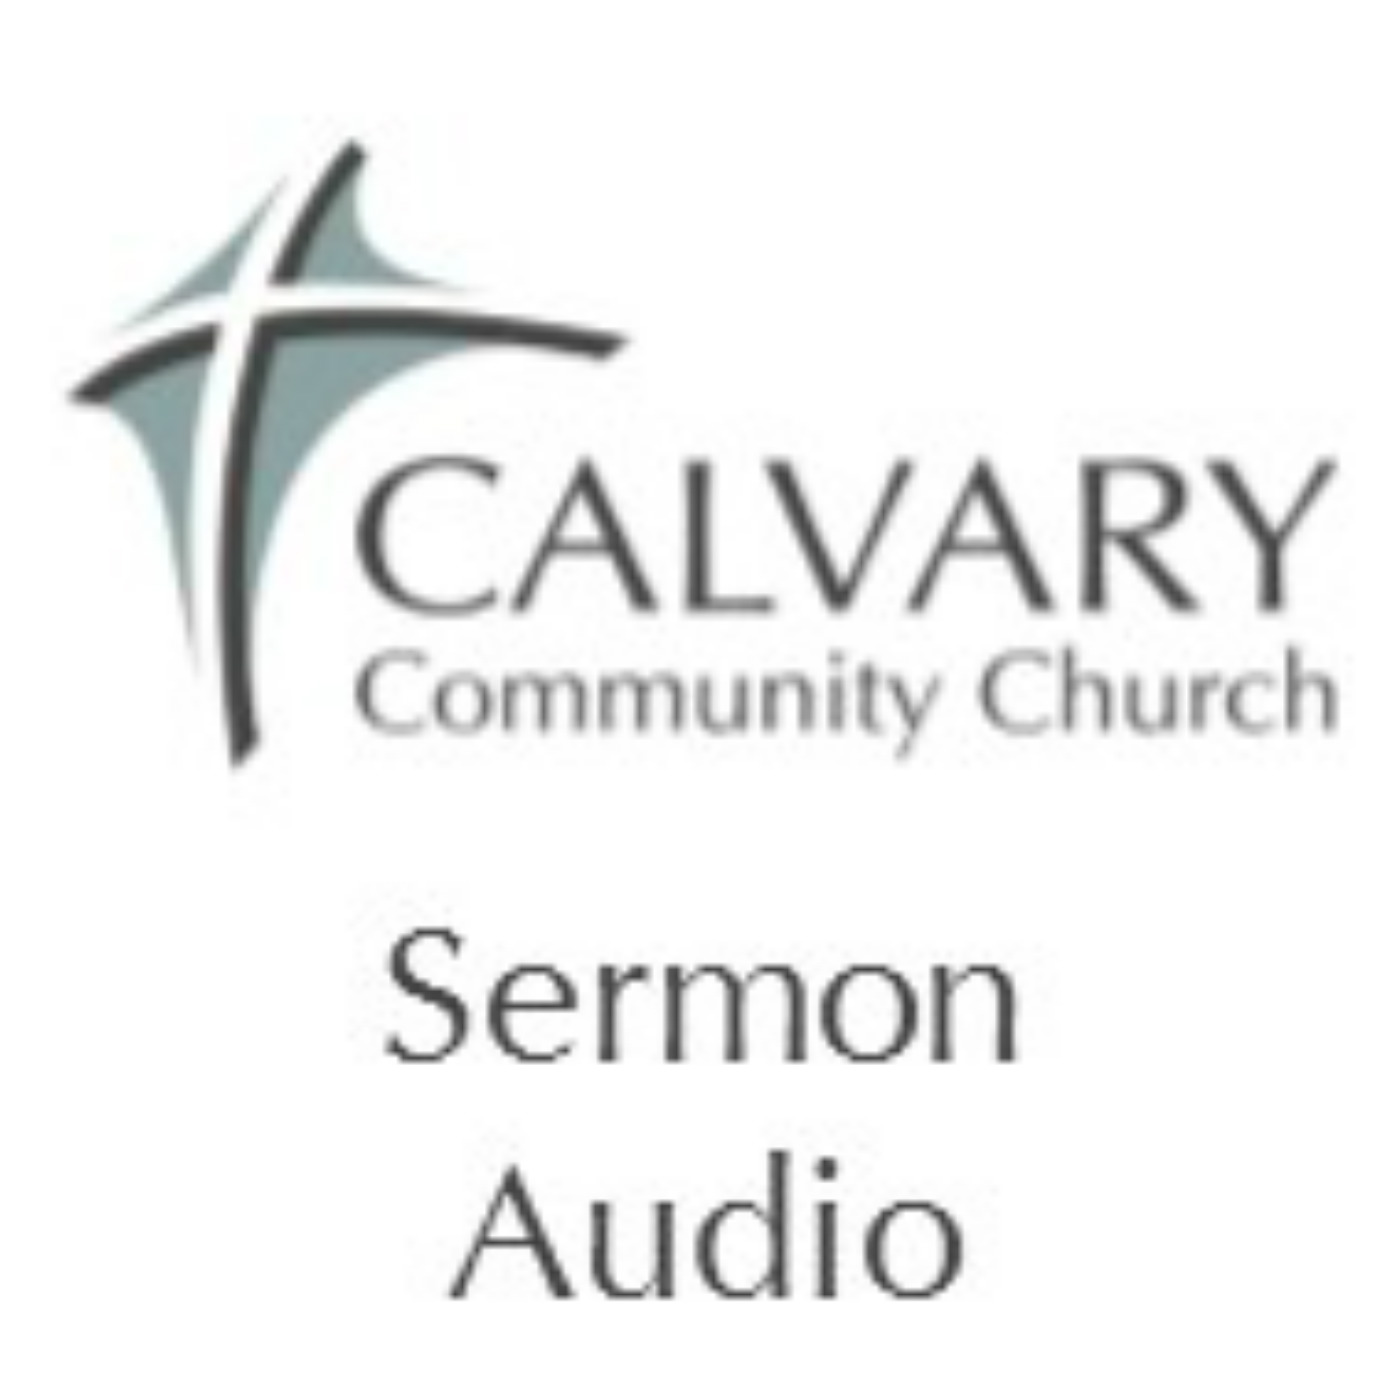 Sermon Audio, Calvary Community Church, Williams Bay, WI